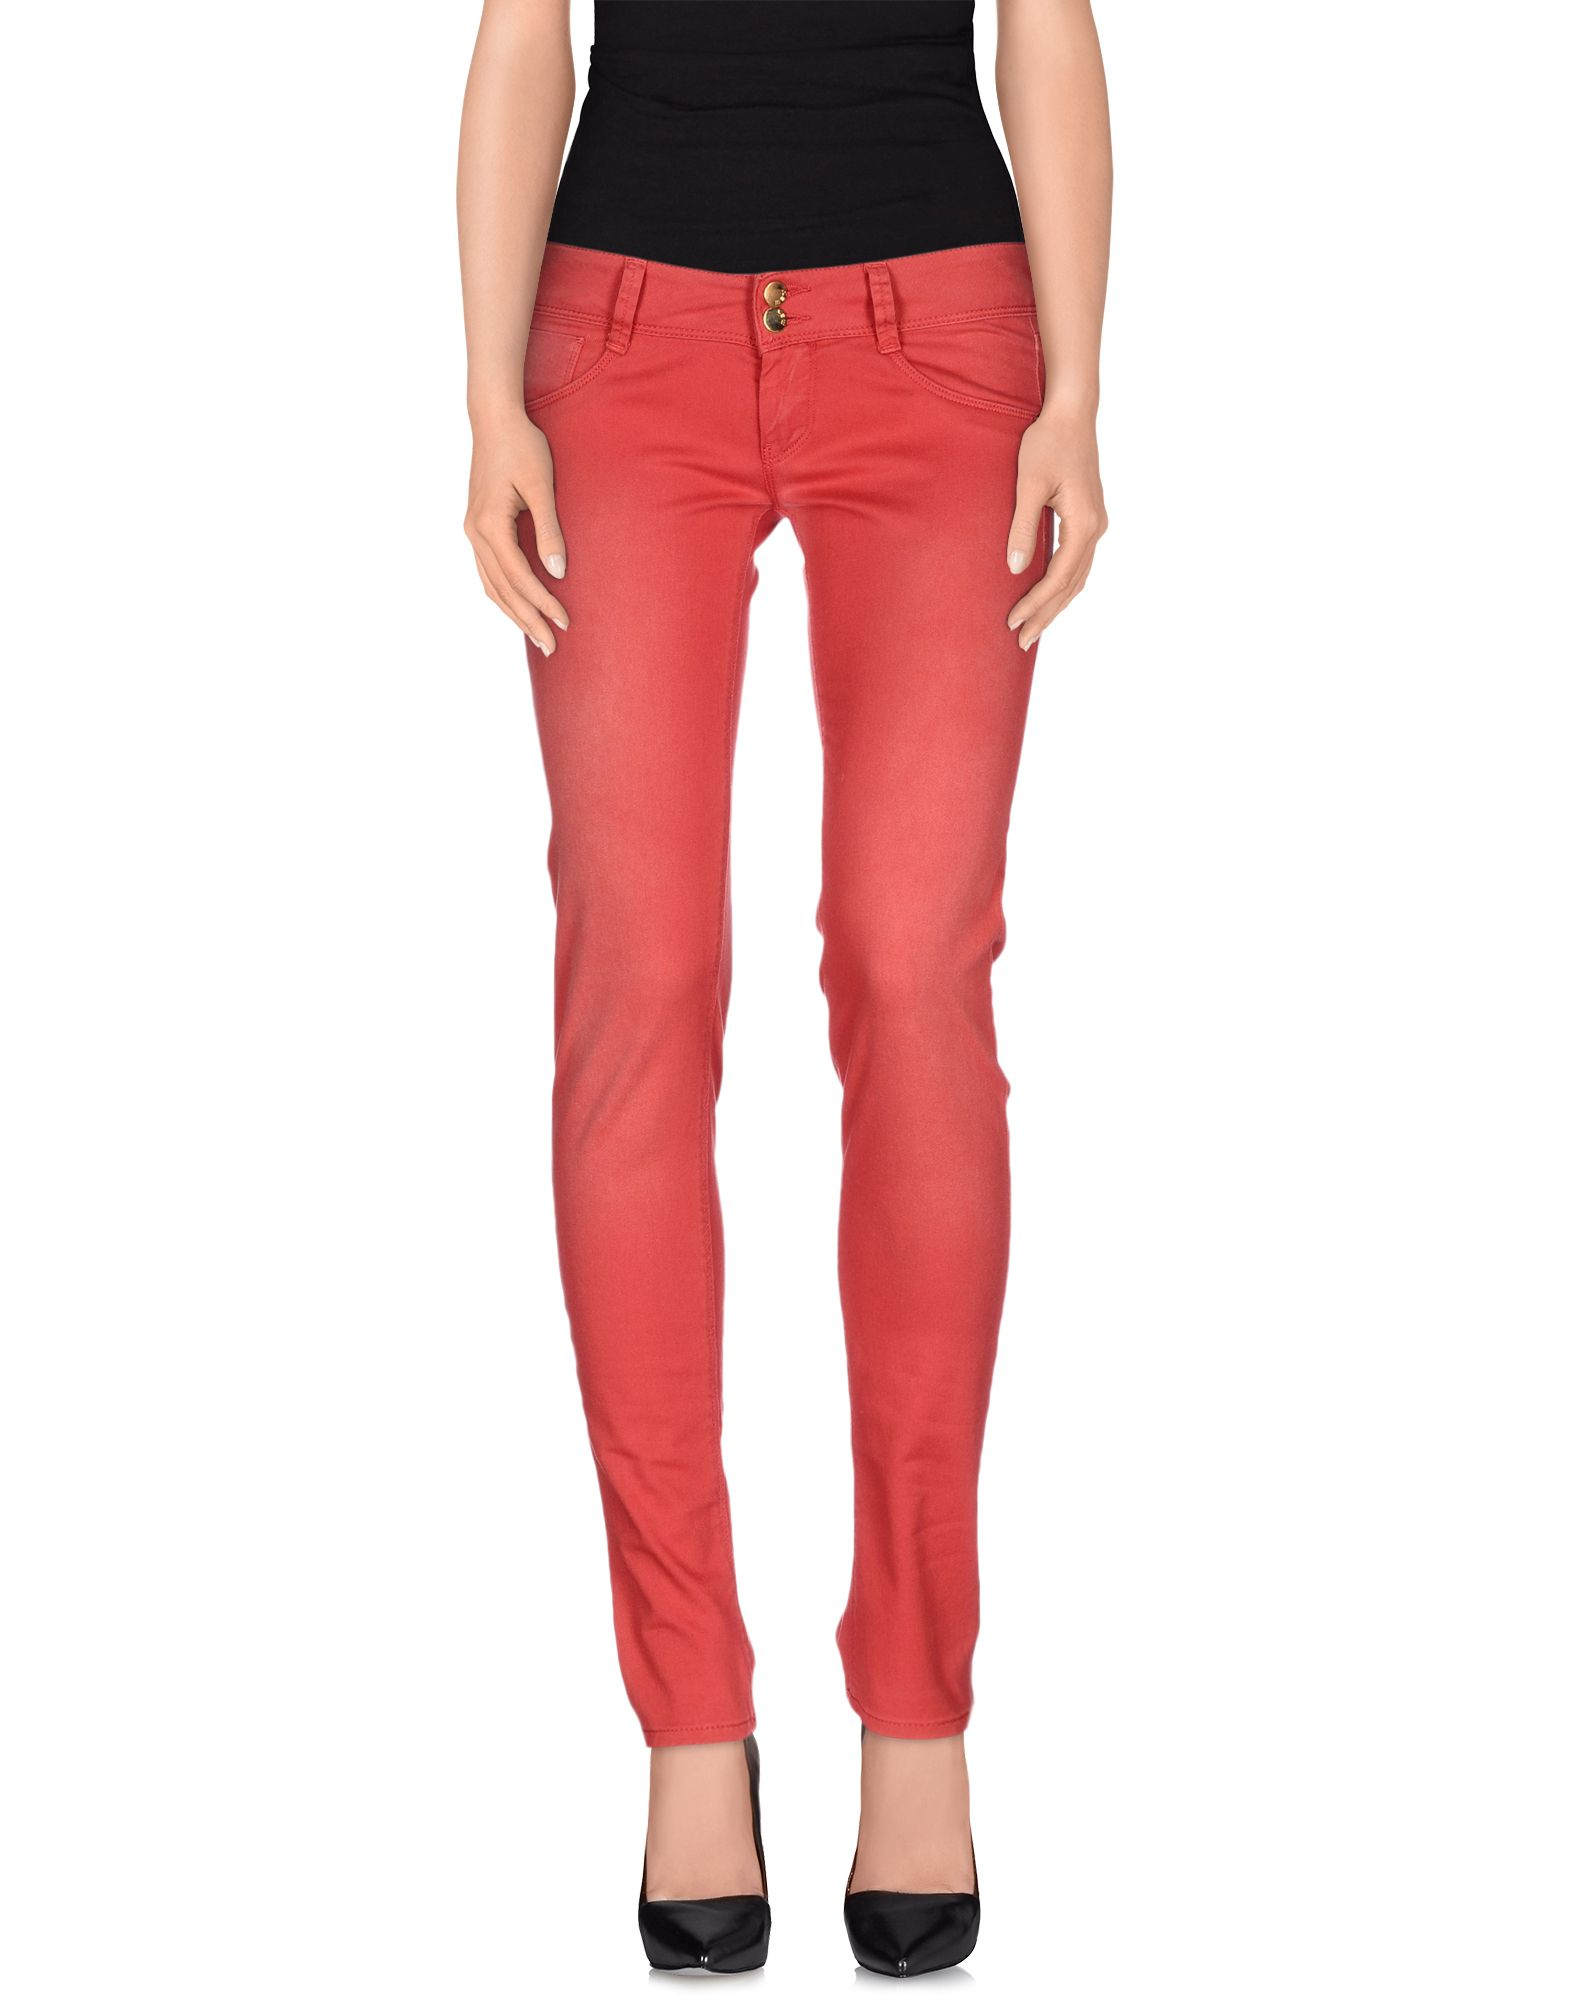 women s red casual pants photo - 2